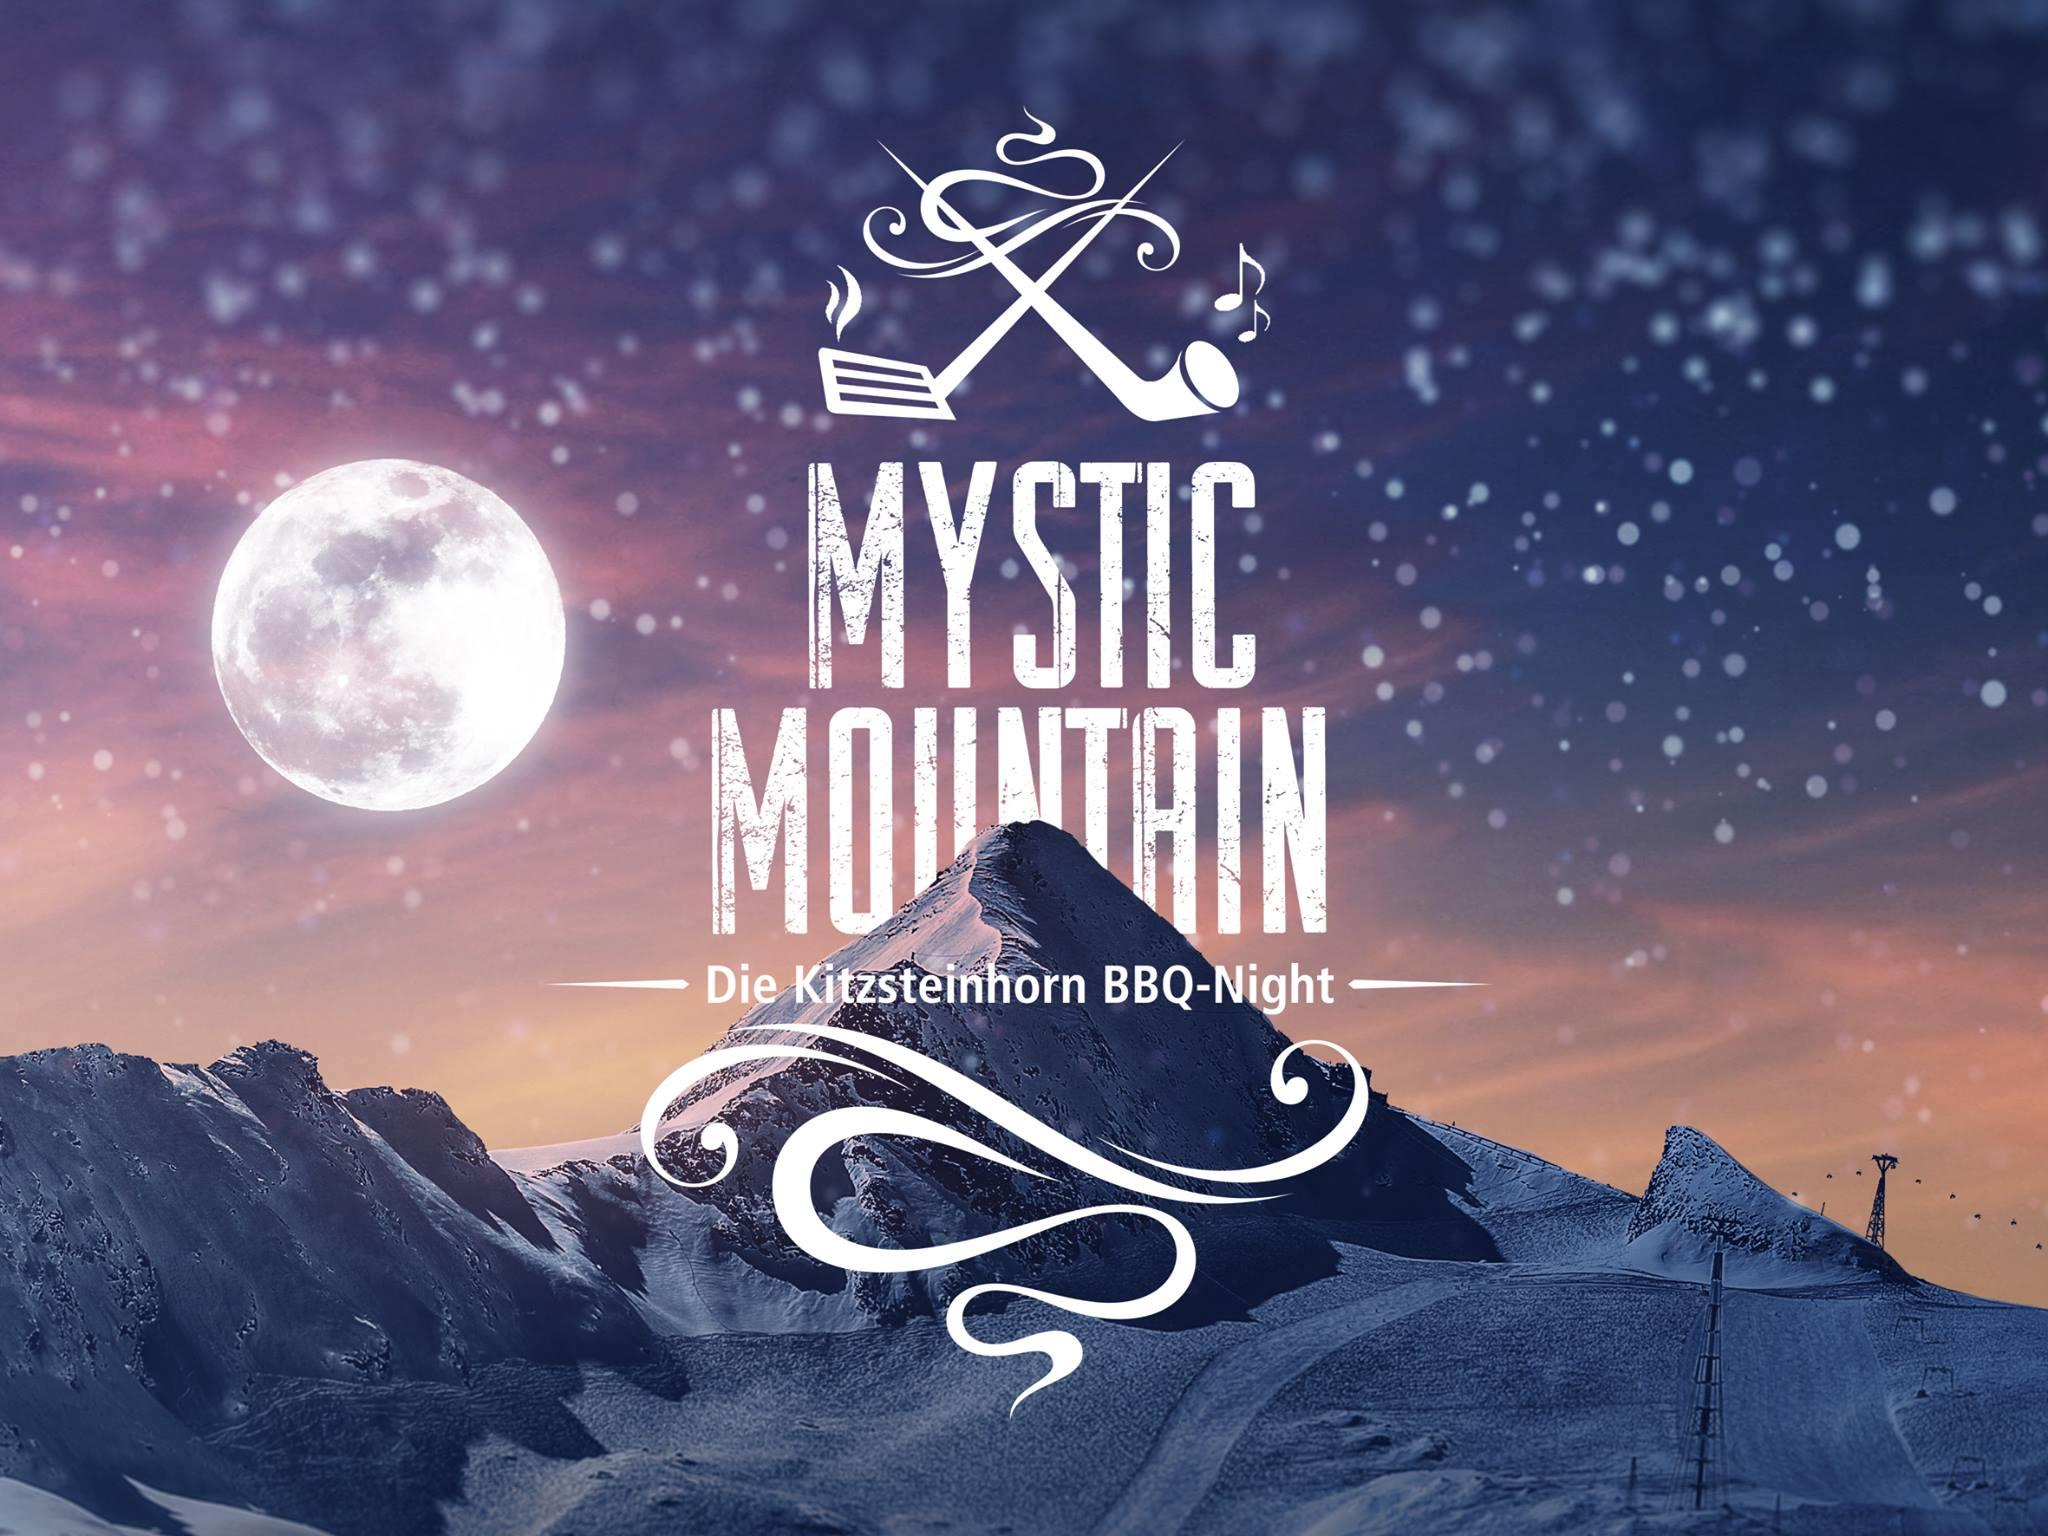 Mystic Mountain - Kitzsteinhorn BBQ Night - 12.02.2021, ab 17:30 Uhr